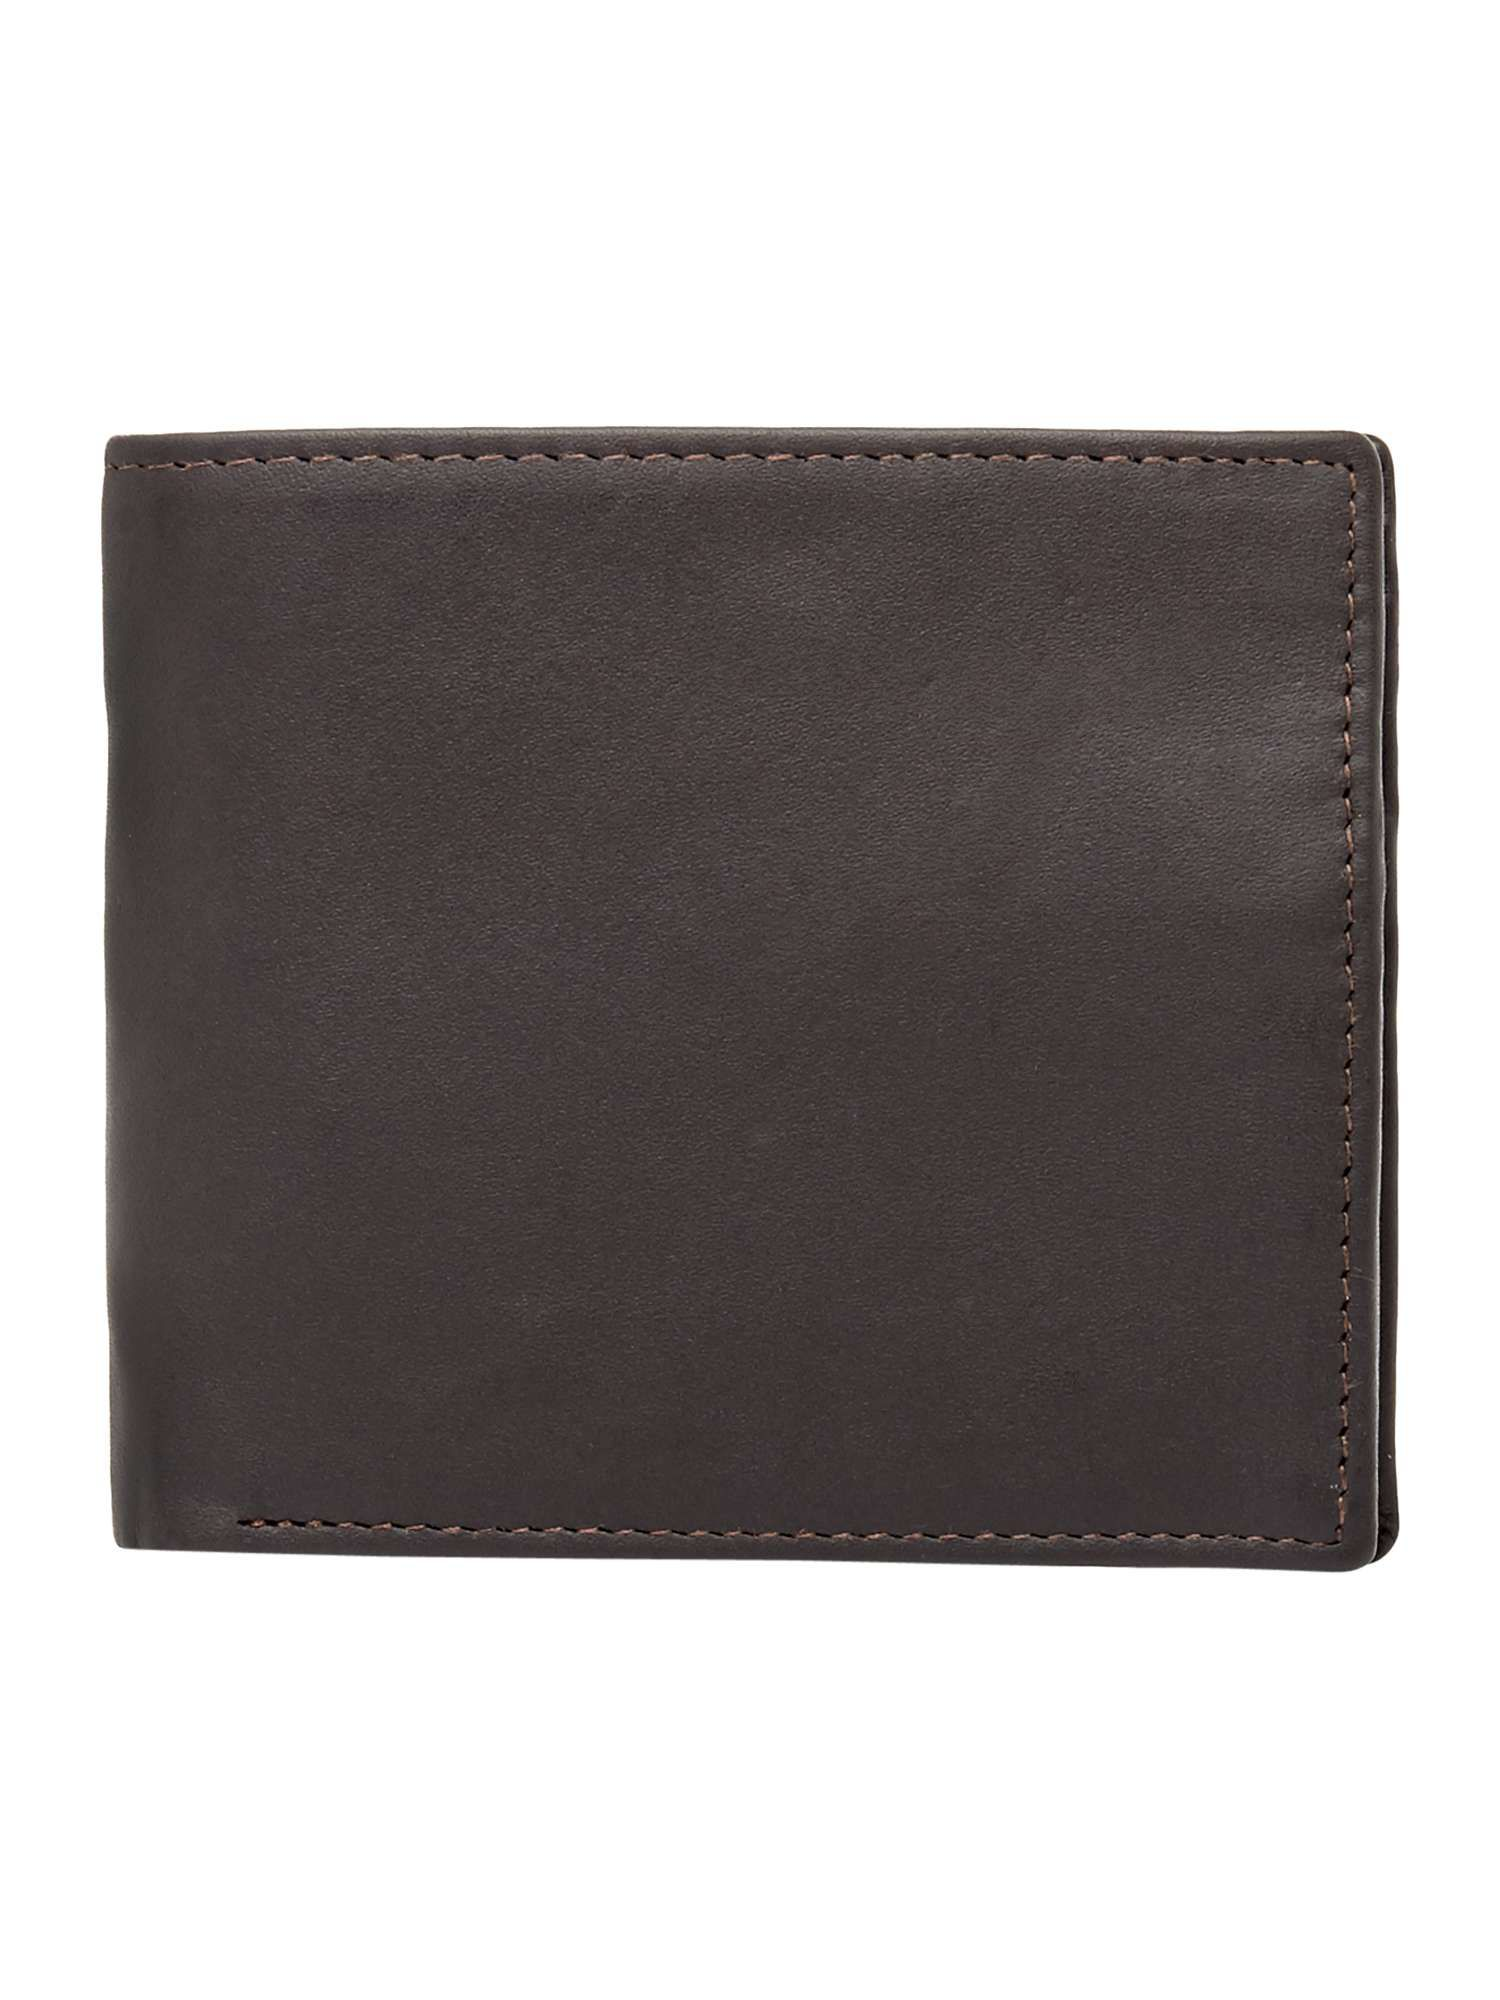 Chester Barrie Leather Notecase Wallet, Brown